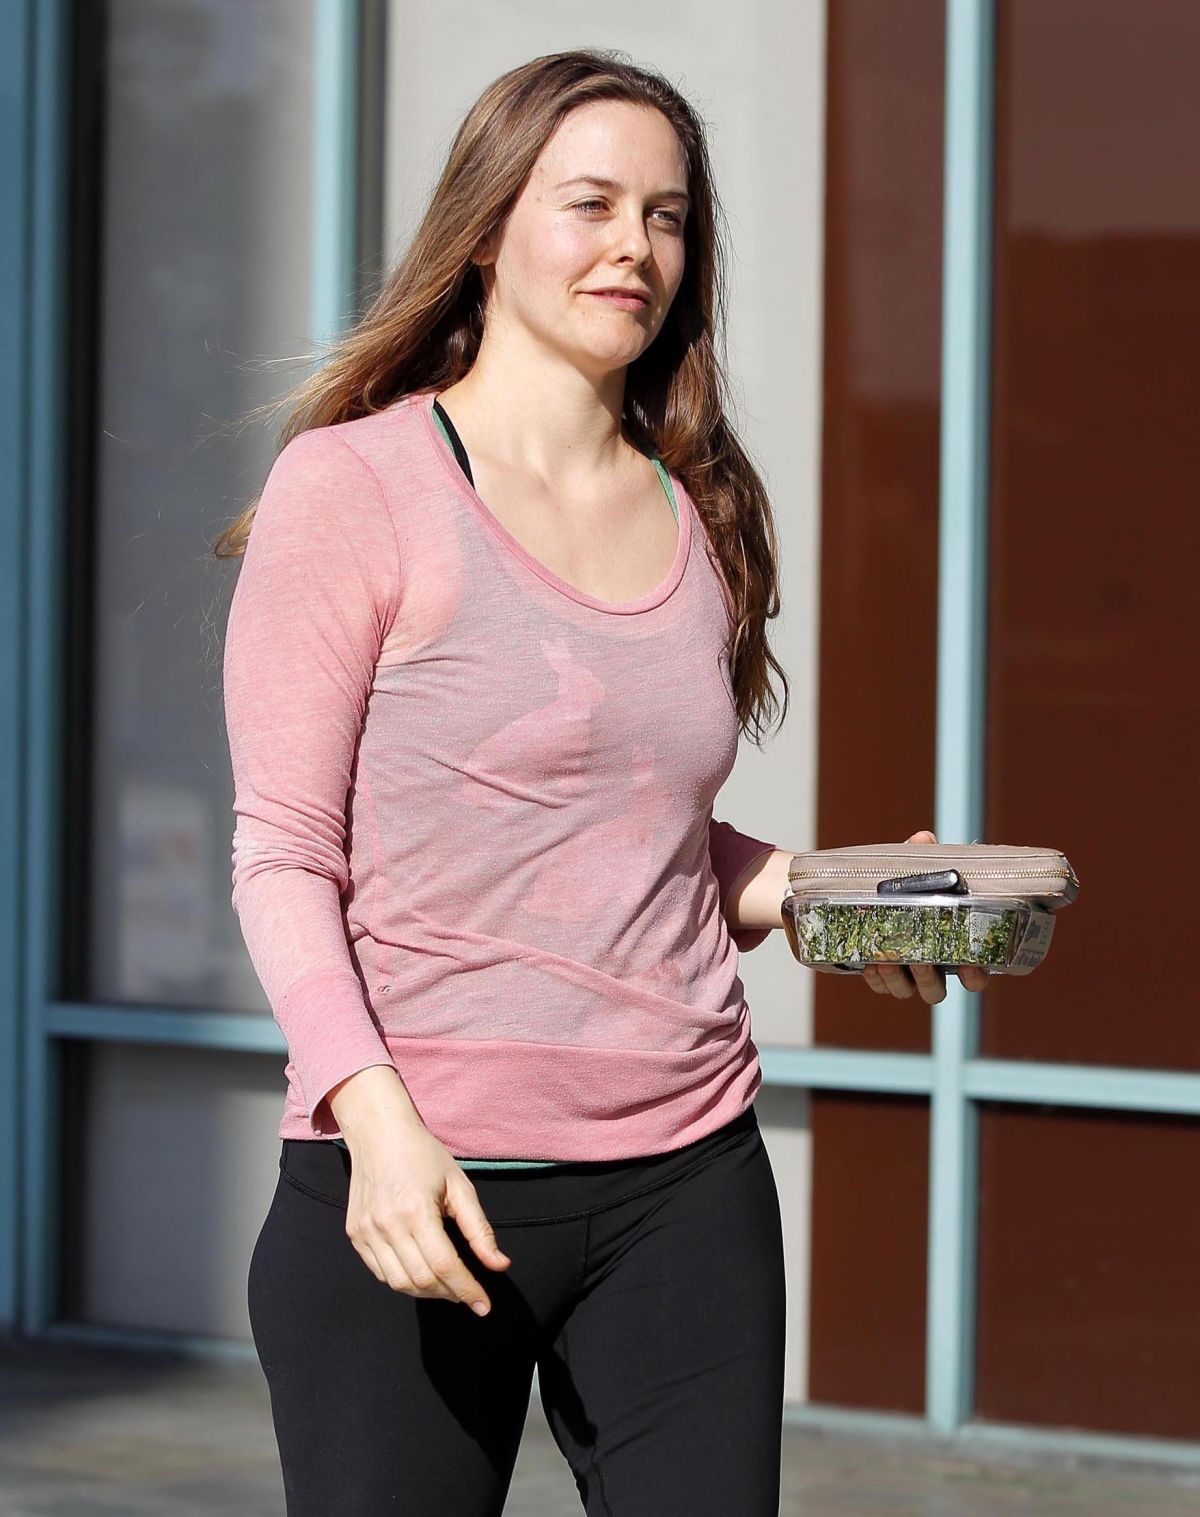 ALICIA SILVERSTONE in Tight Leggings Out and About in Los Angeles